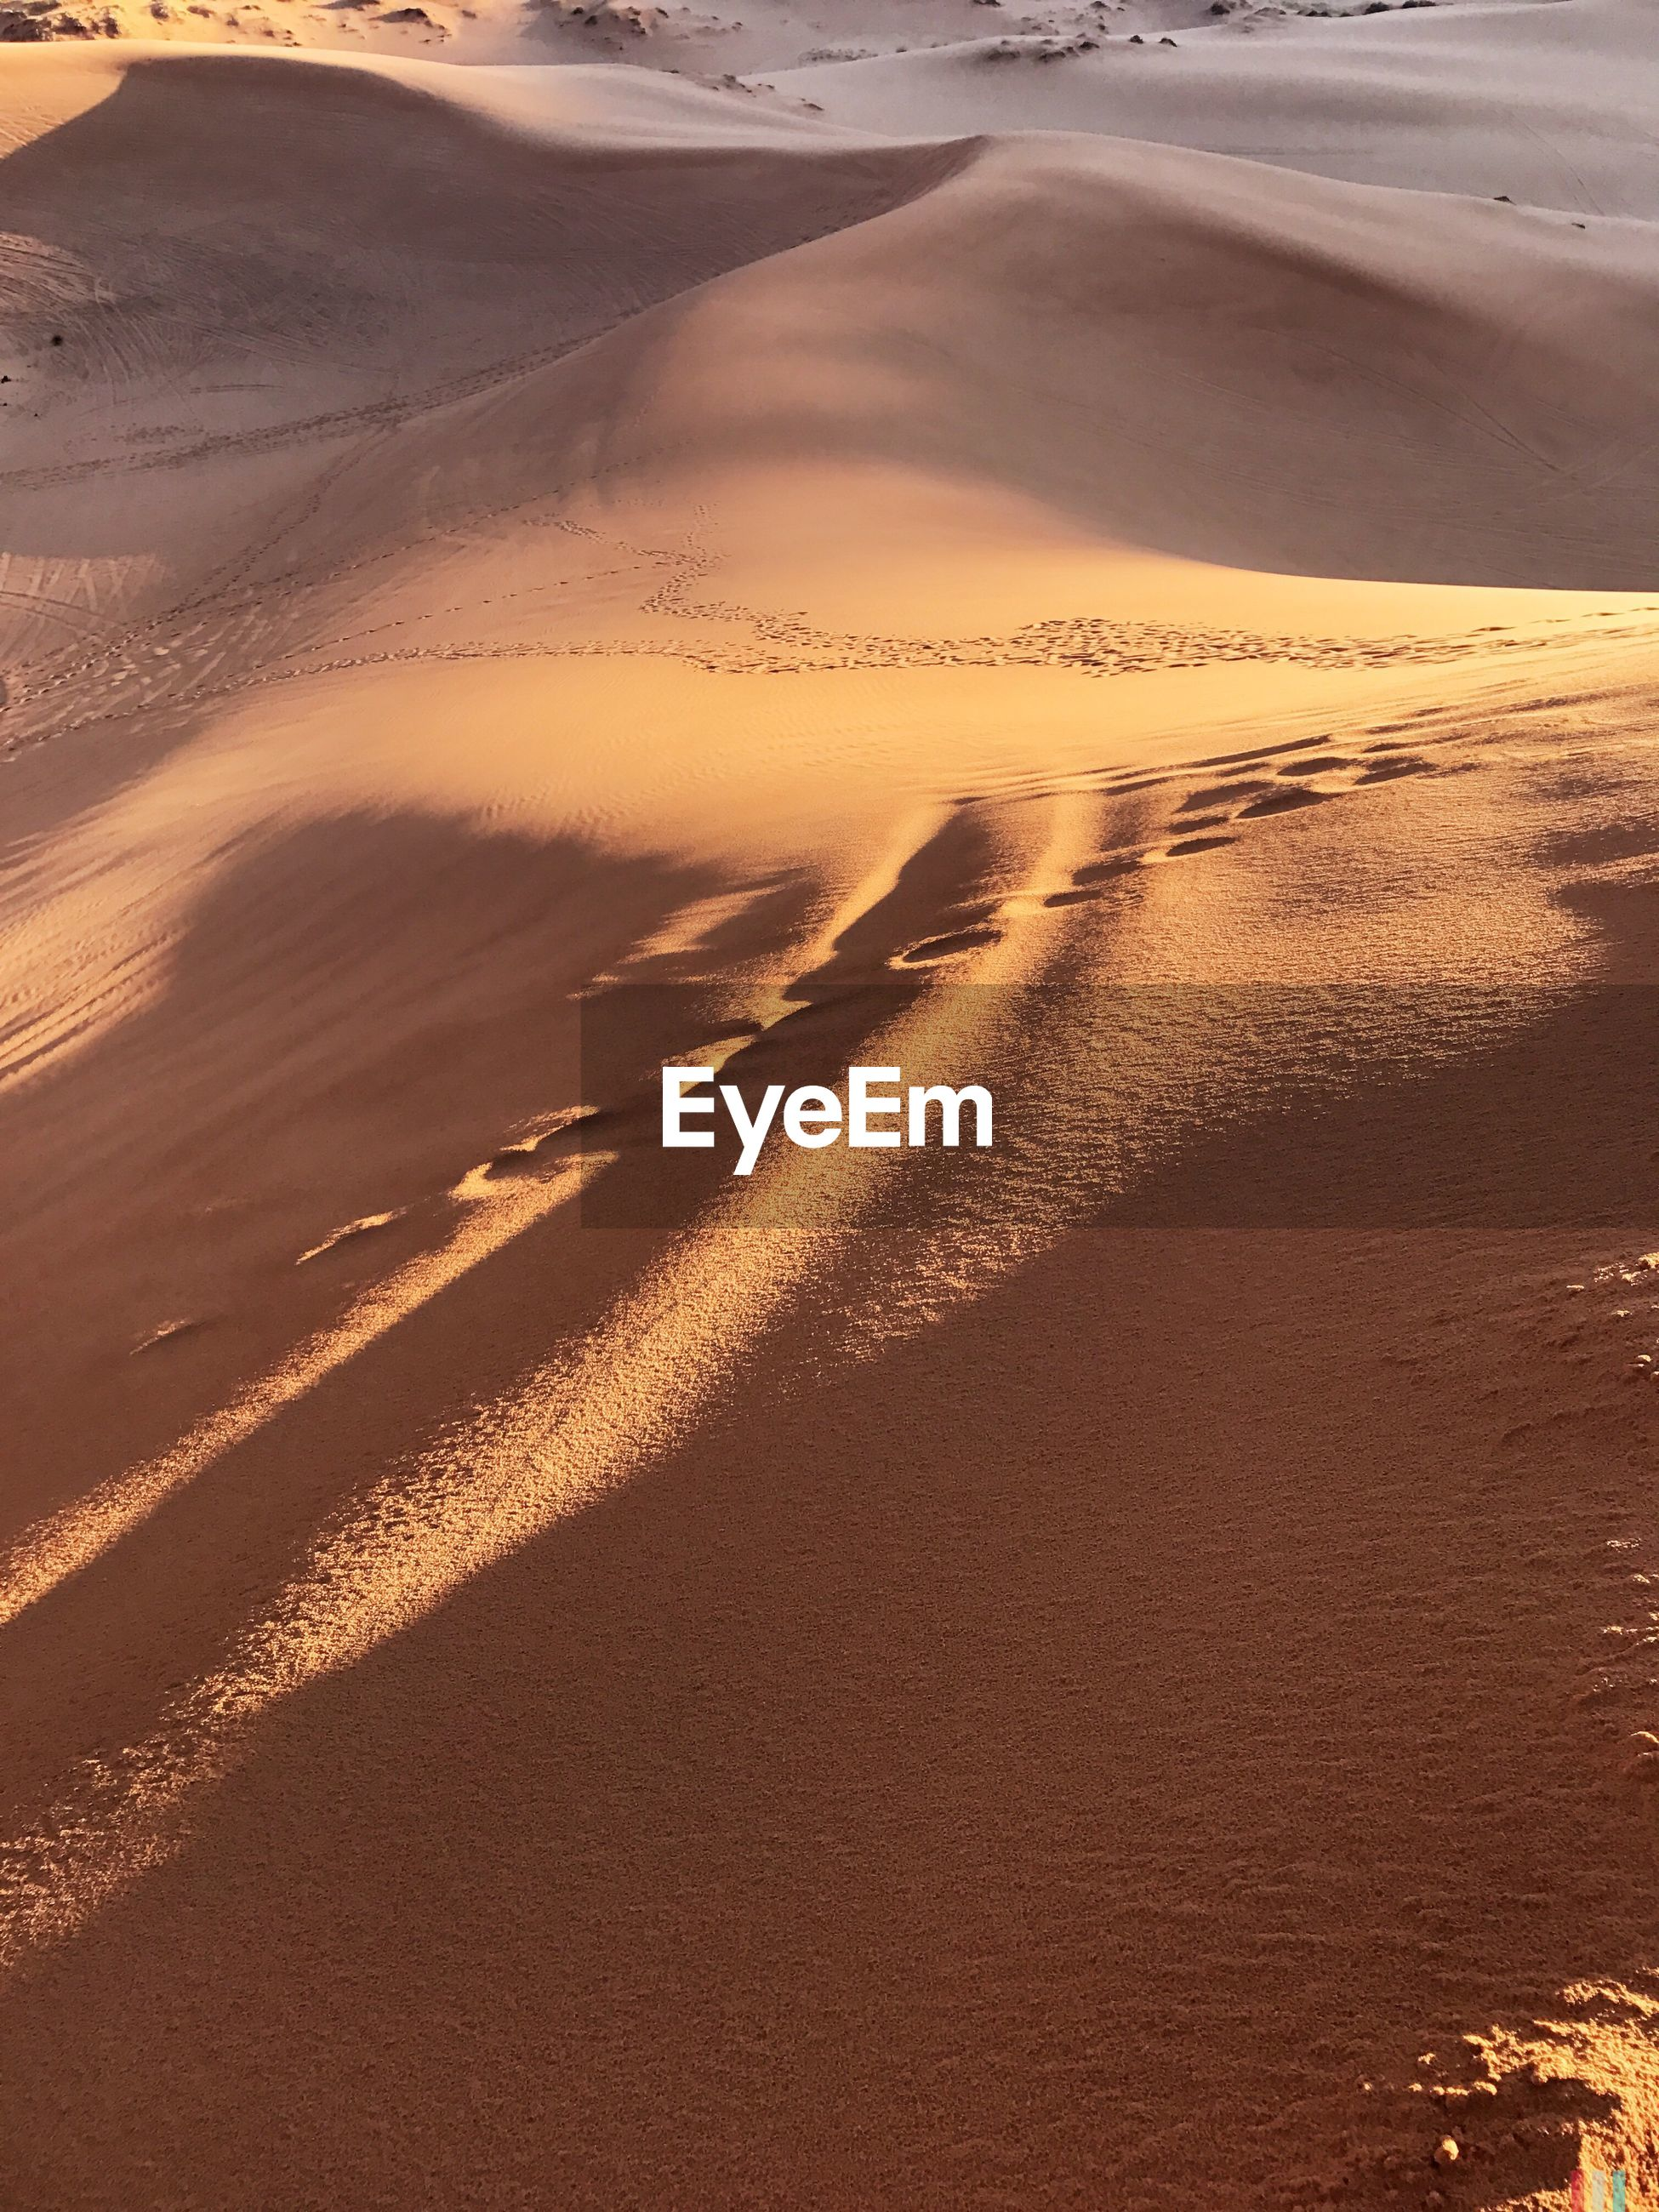 AERIAL VIEW OF DESERT AT SUNSET